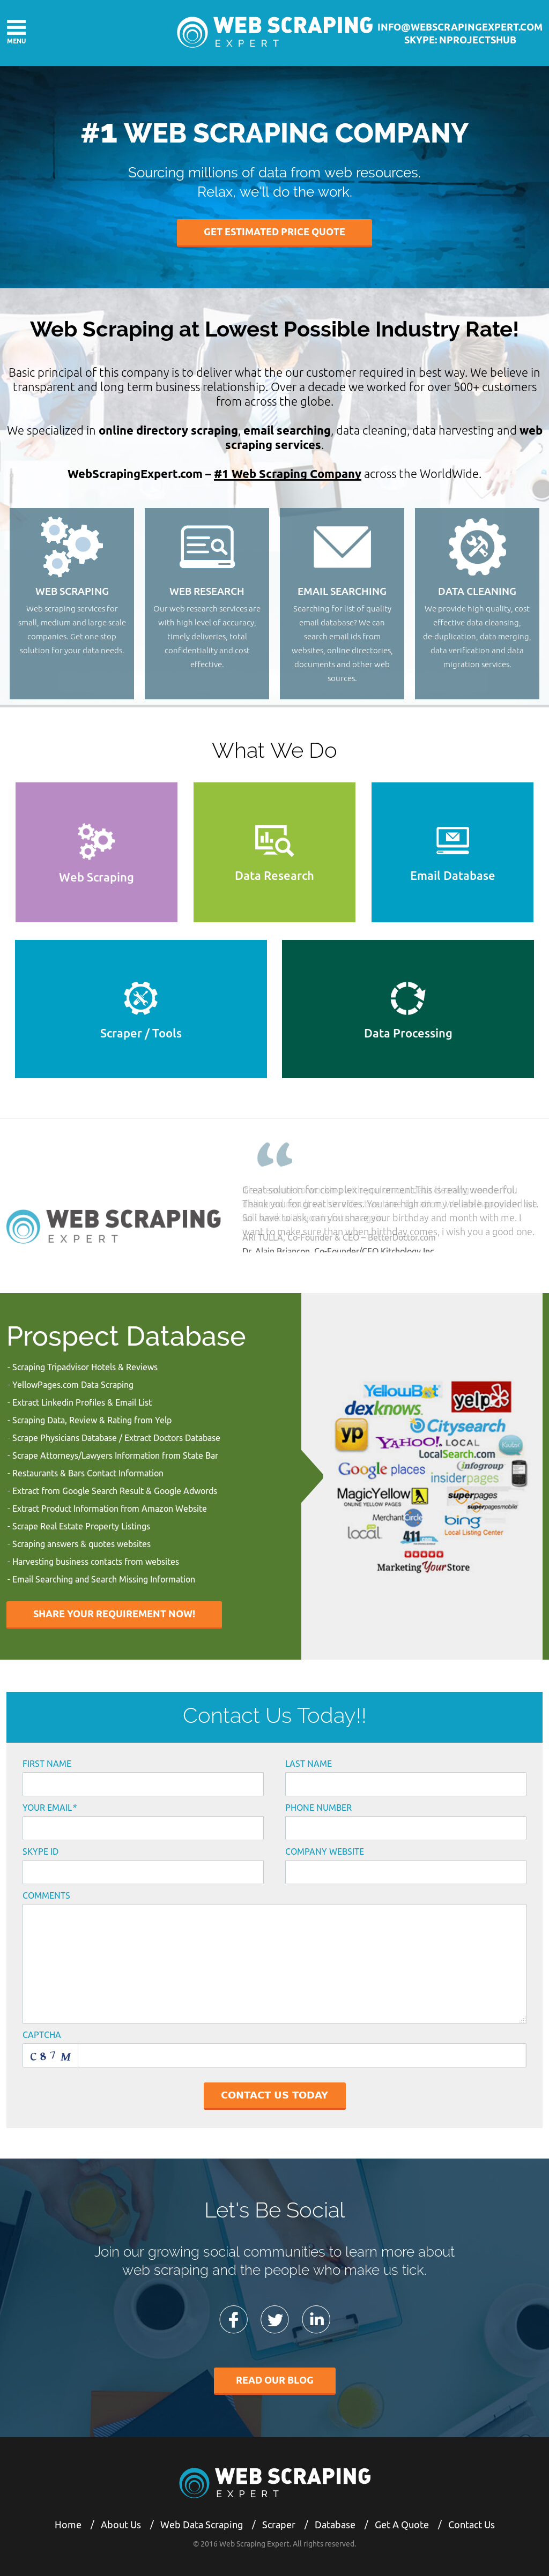 Web Scraping Expert Competitors, Revenue and Employees